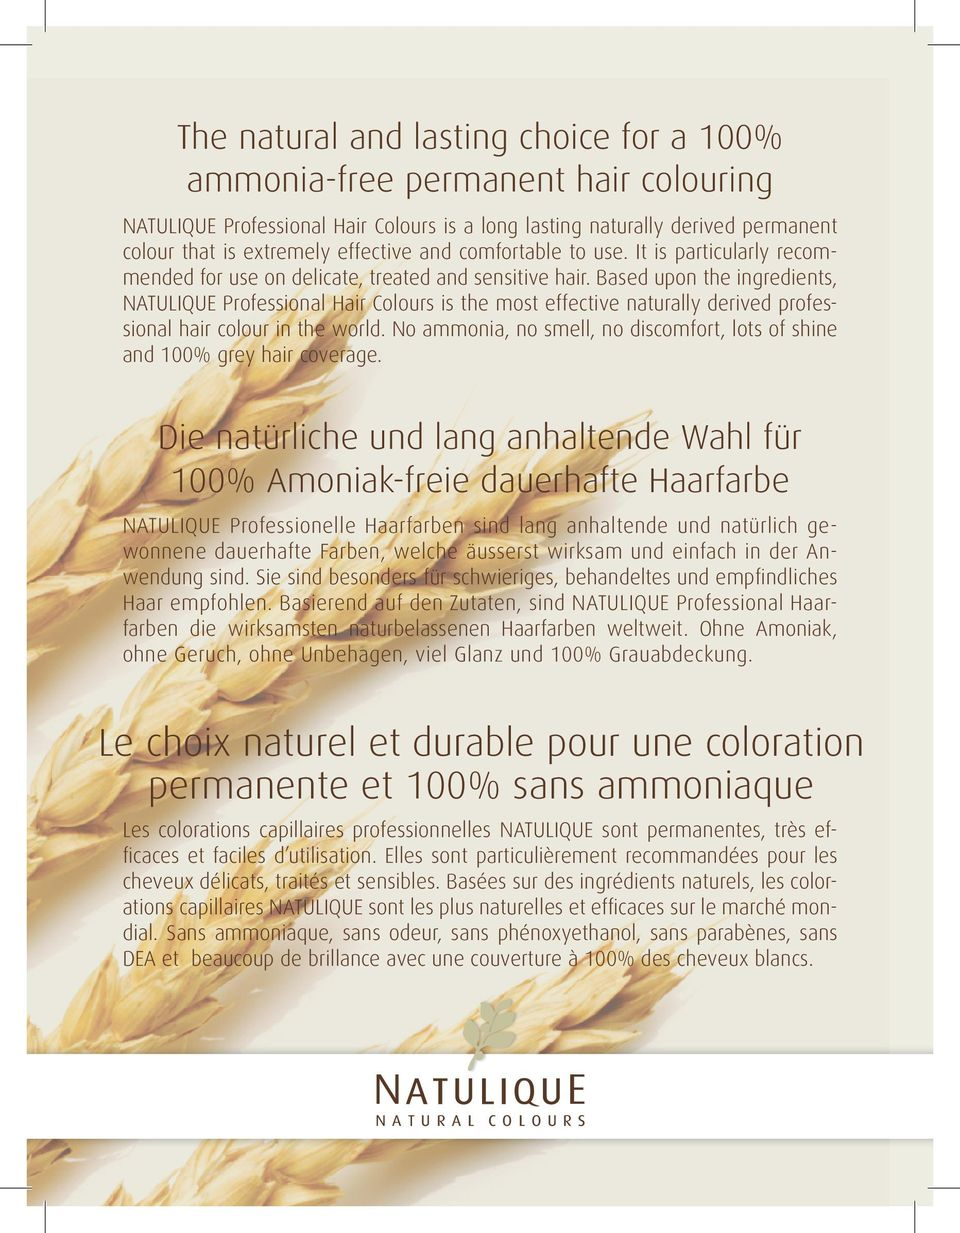 Based upon the ingredients, NATULIQUE Professional Hair Colours is the most effective naturally derived professional hair colour in the world.